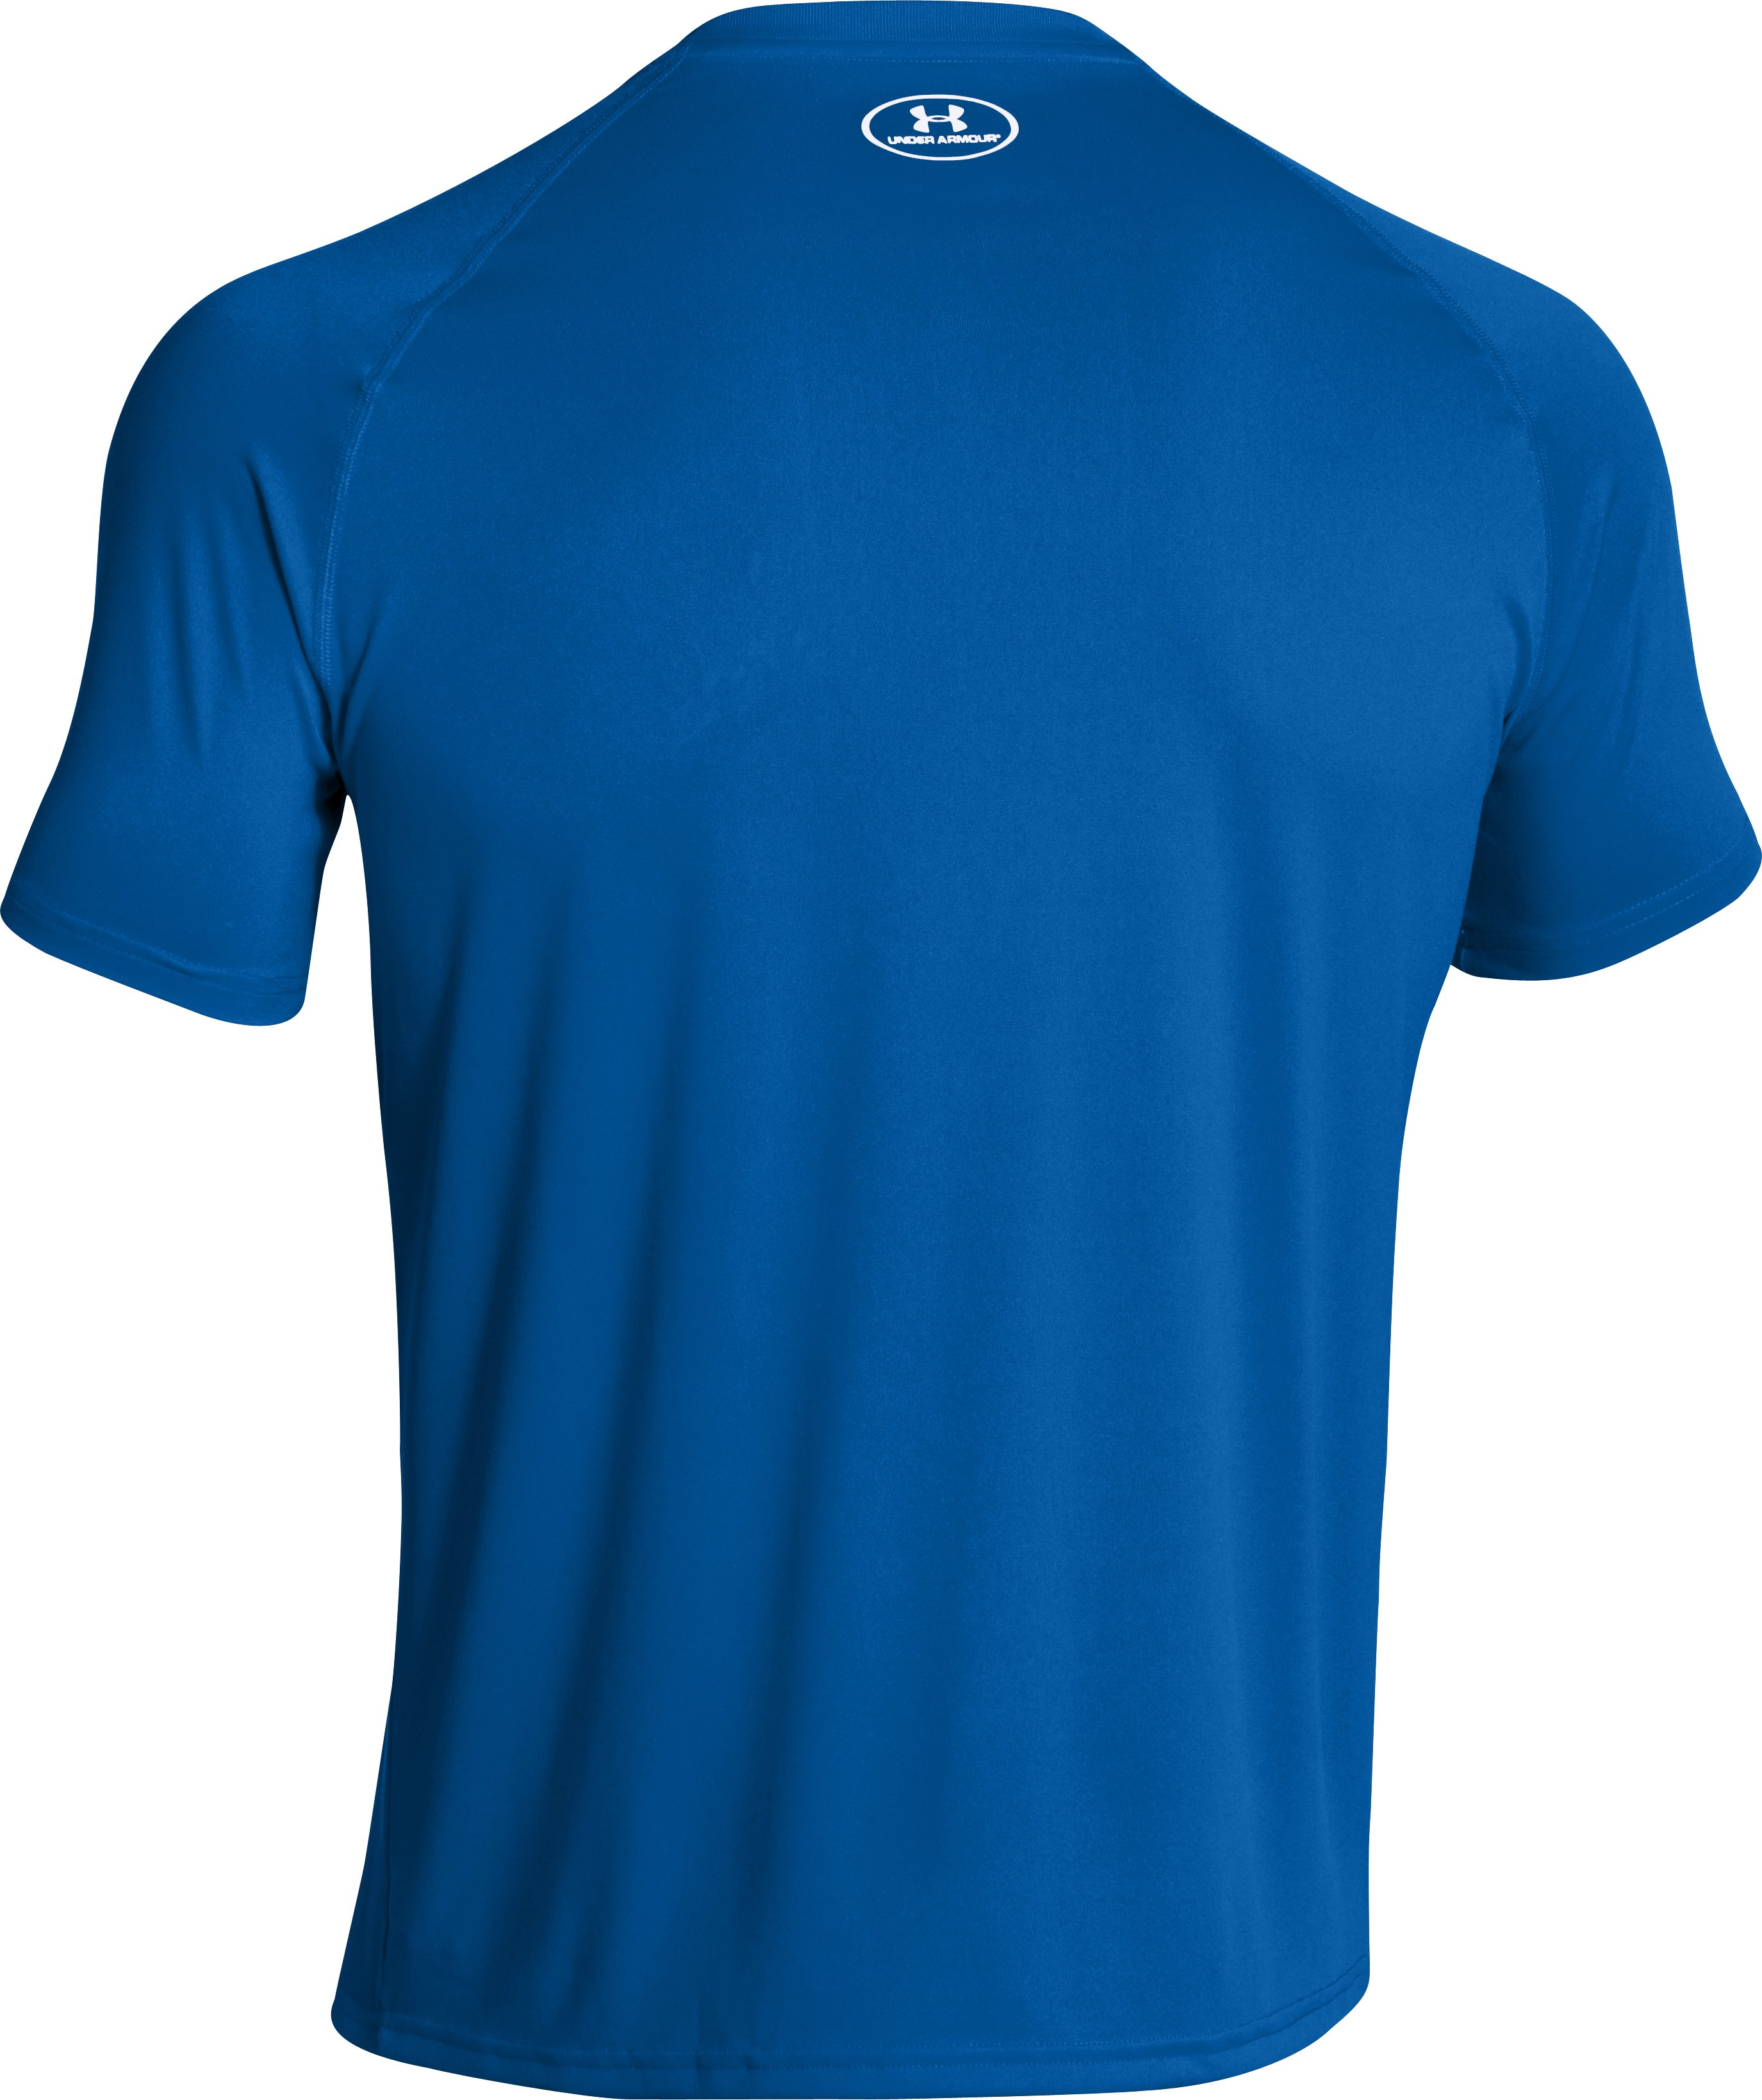 Men's Italy Under Armour® Superman T-Shirt, SUPERIOR BLUE